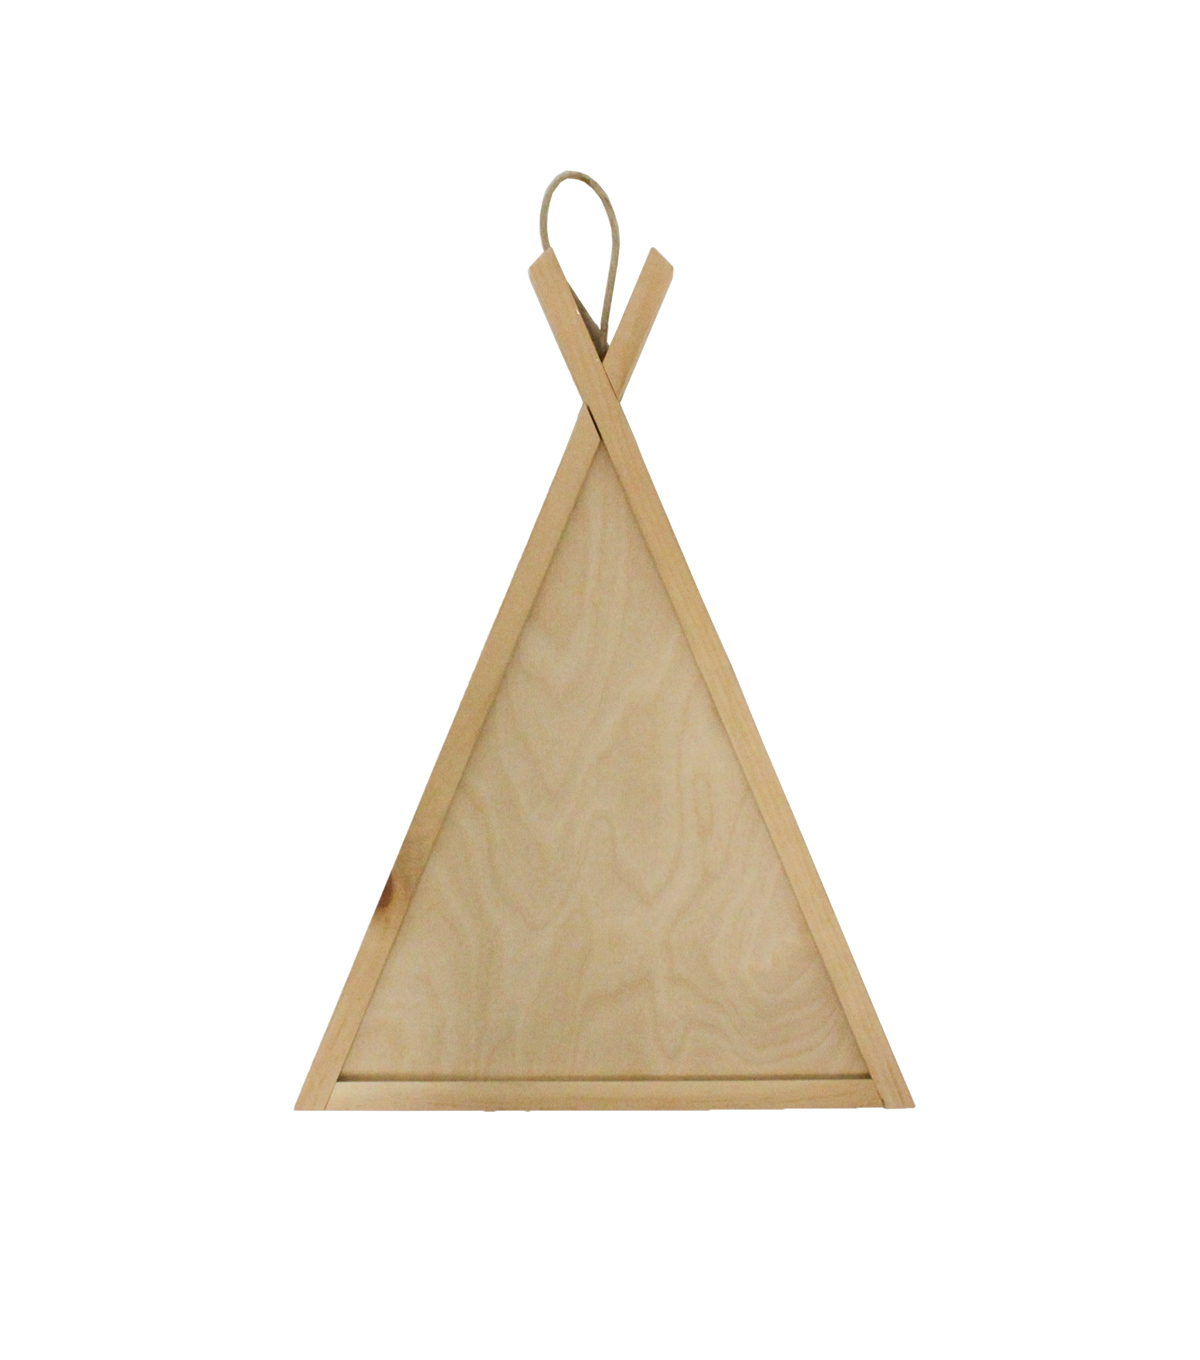 Unfinished Wood Surface-Teepee